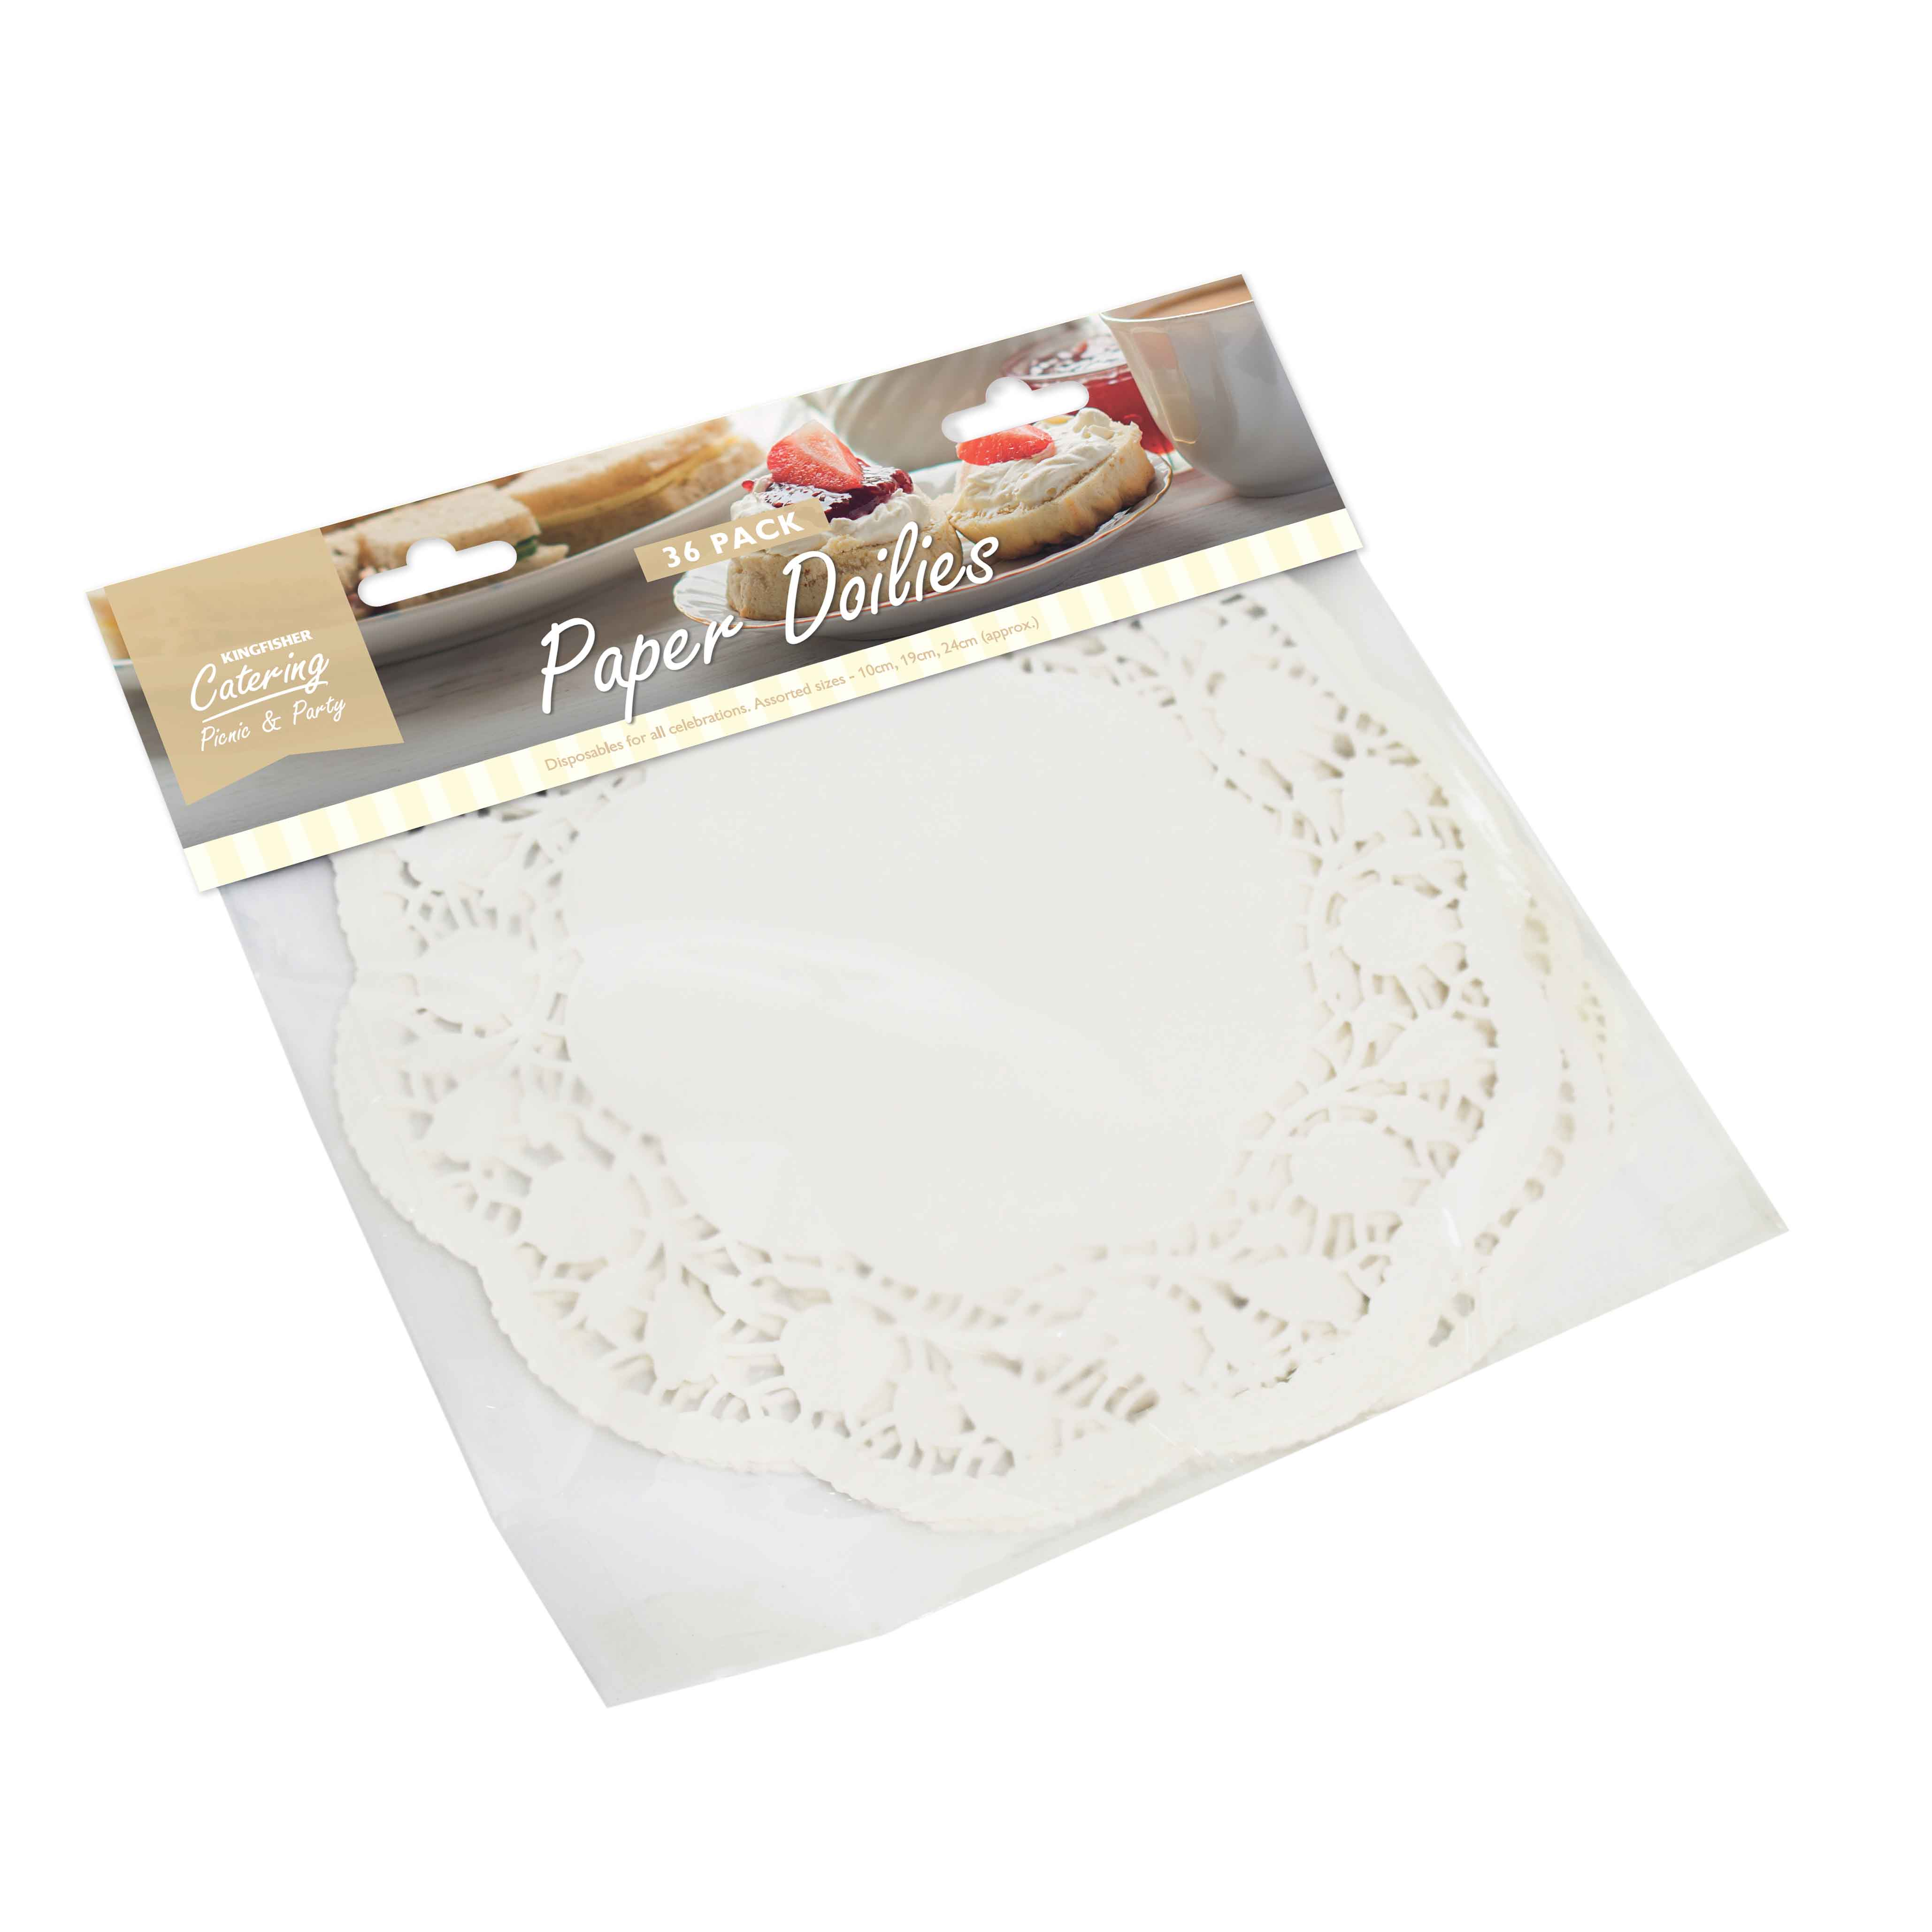 K/F ASSORTED WHITE DOILIES 36 PACK